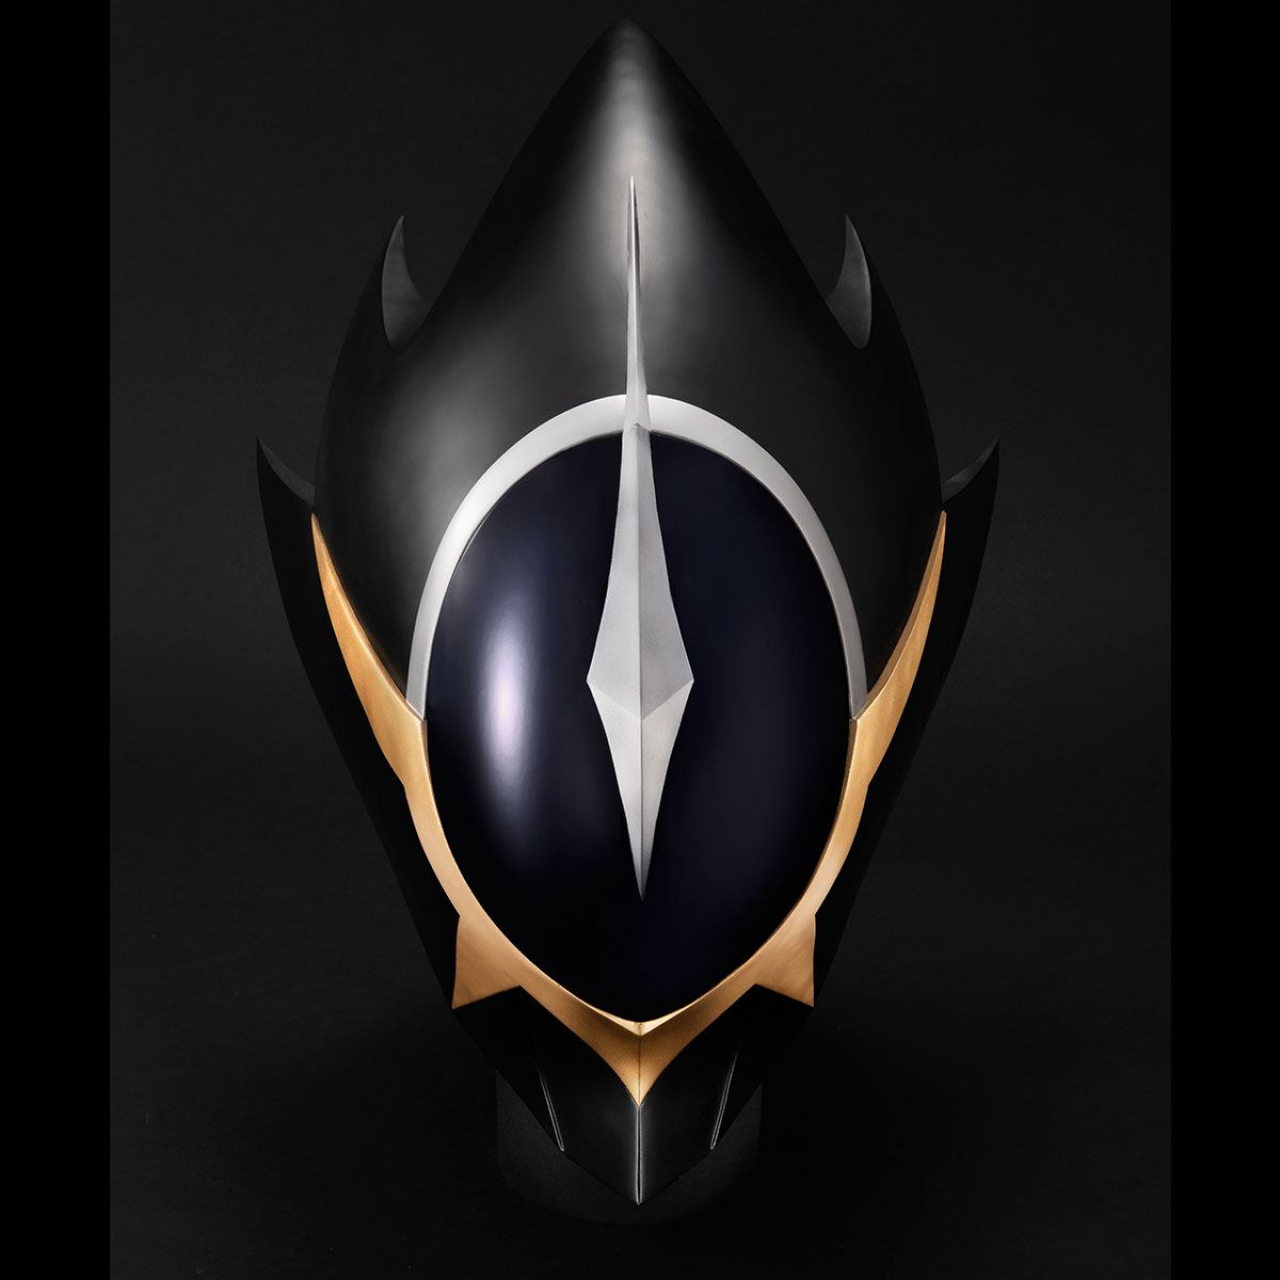 Code Geass Lelouch of the Resurrection Full Scale Works Replica 1/1 Zero Mask 36 cm